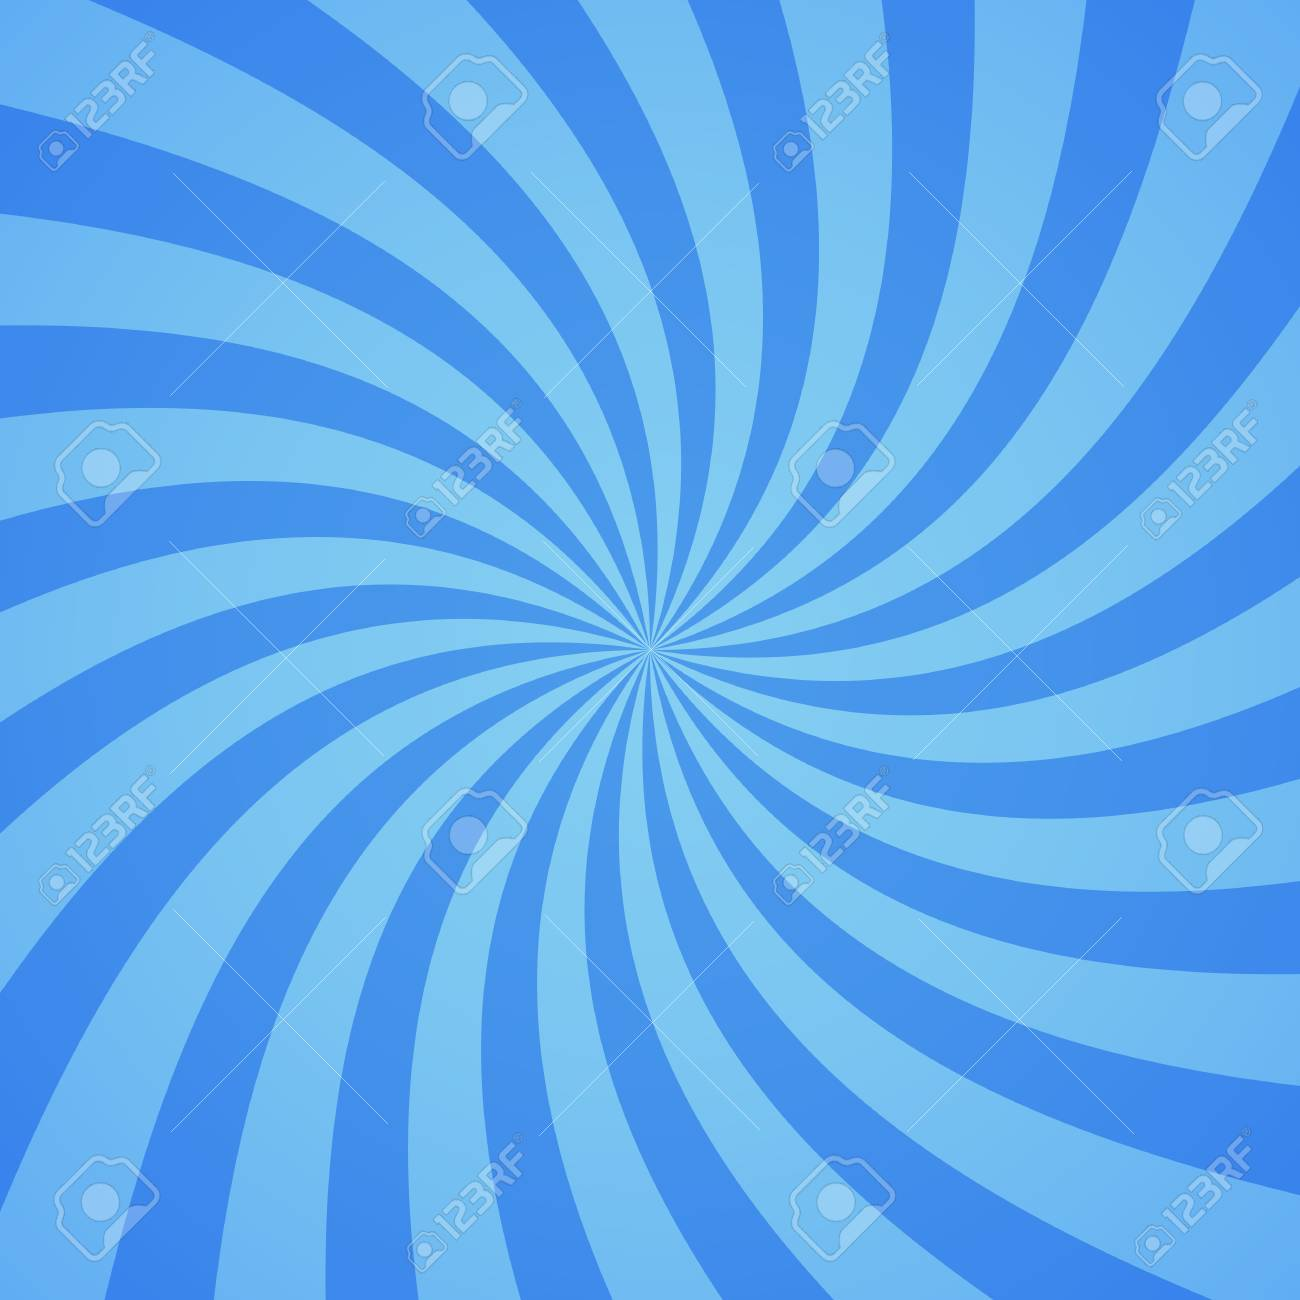 swirling radial pattern background vector illustration for cute